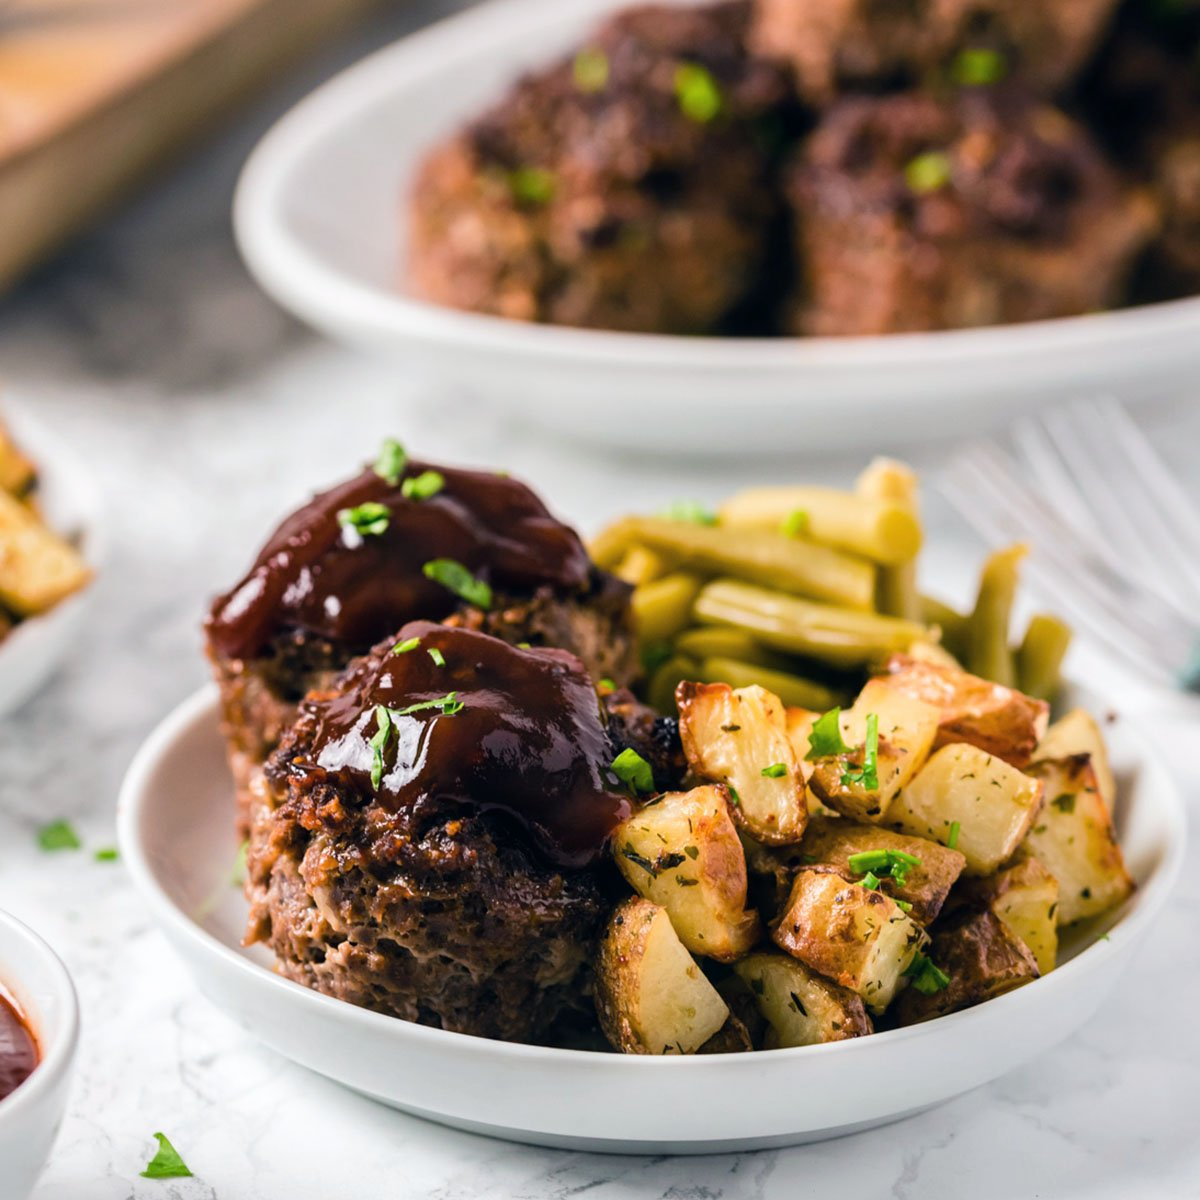 plate of meatloaf muffins, roasted potatoes, and green beans